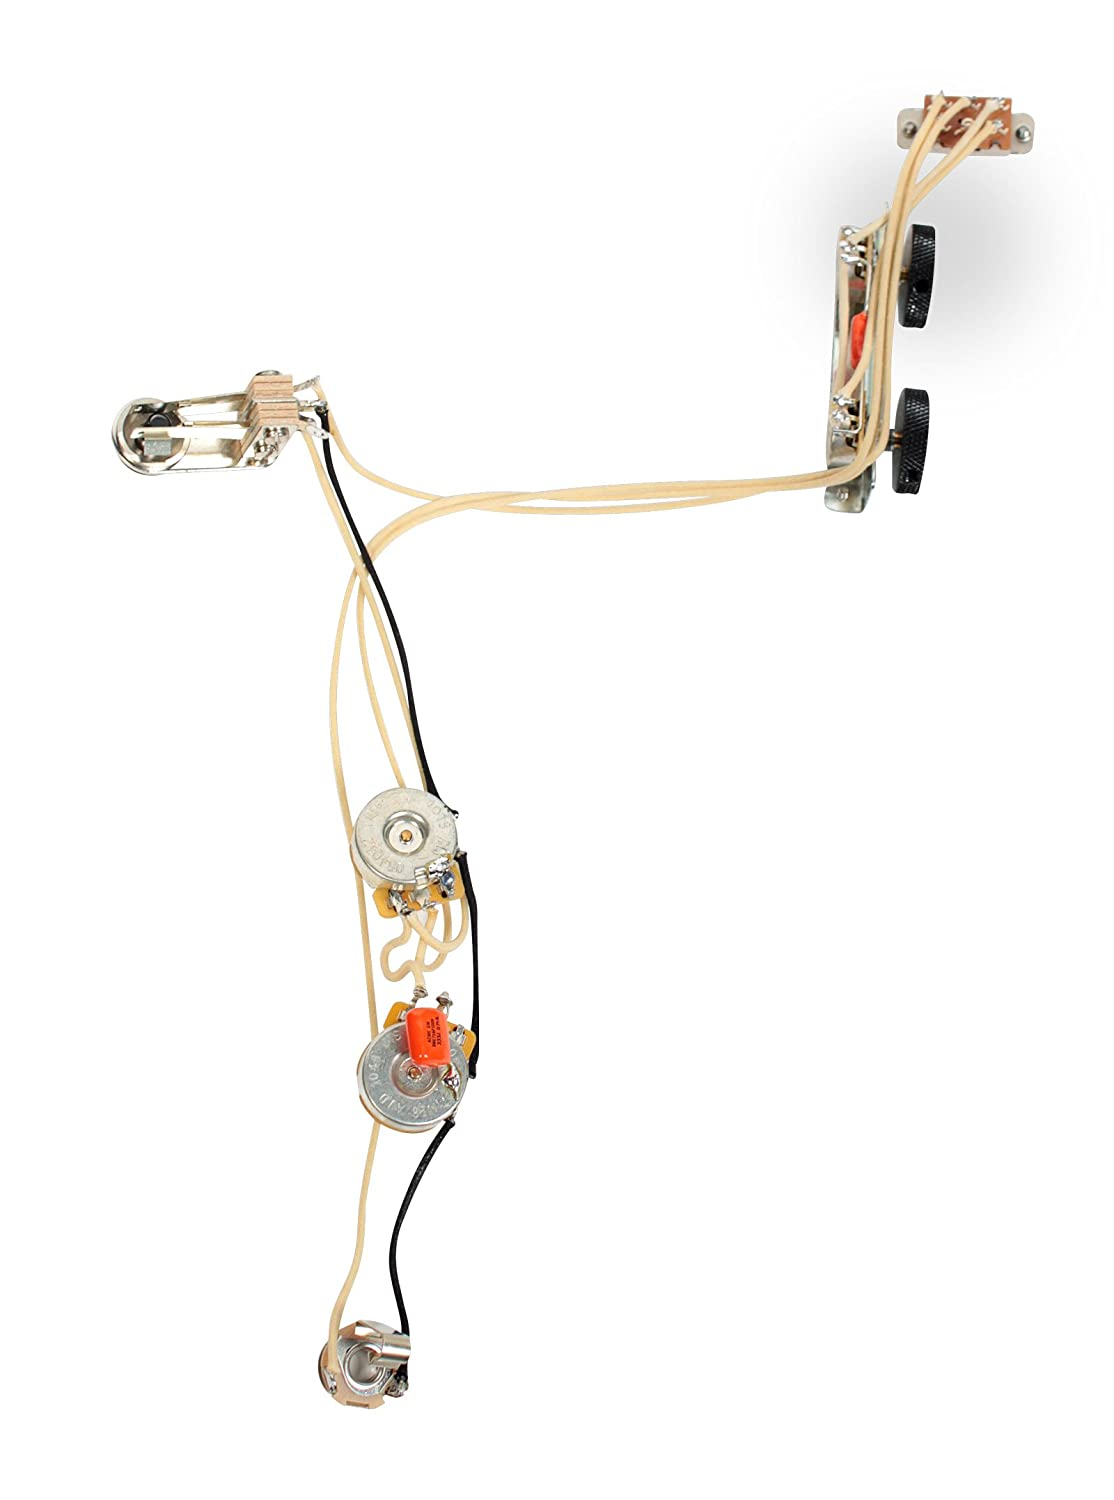 61iktXzx4dL._SL1500_ amazon com fender vintage traditional jazzmaster guitar pre wired Wiring Harness Diagram at gsmx.co